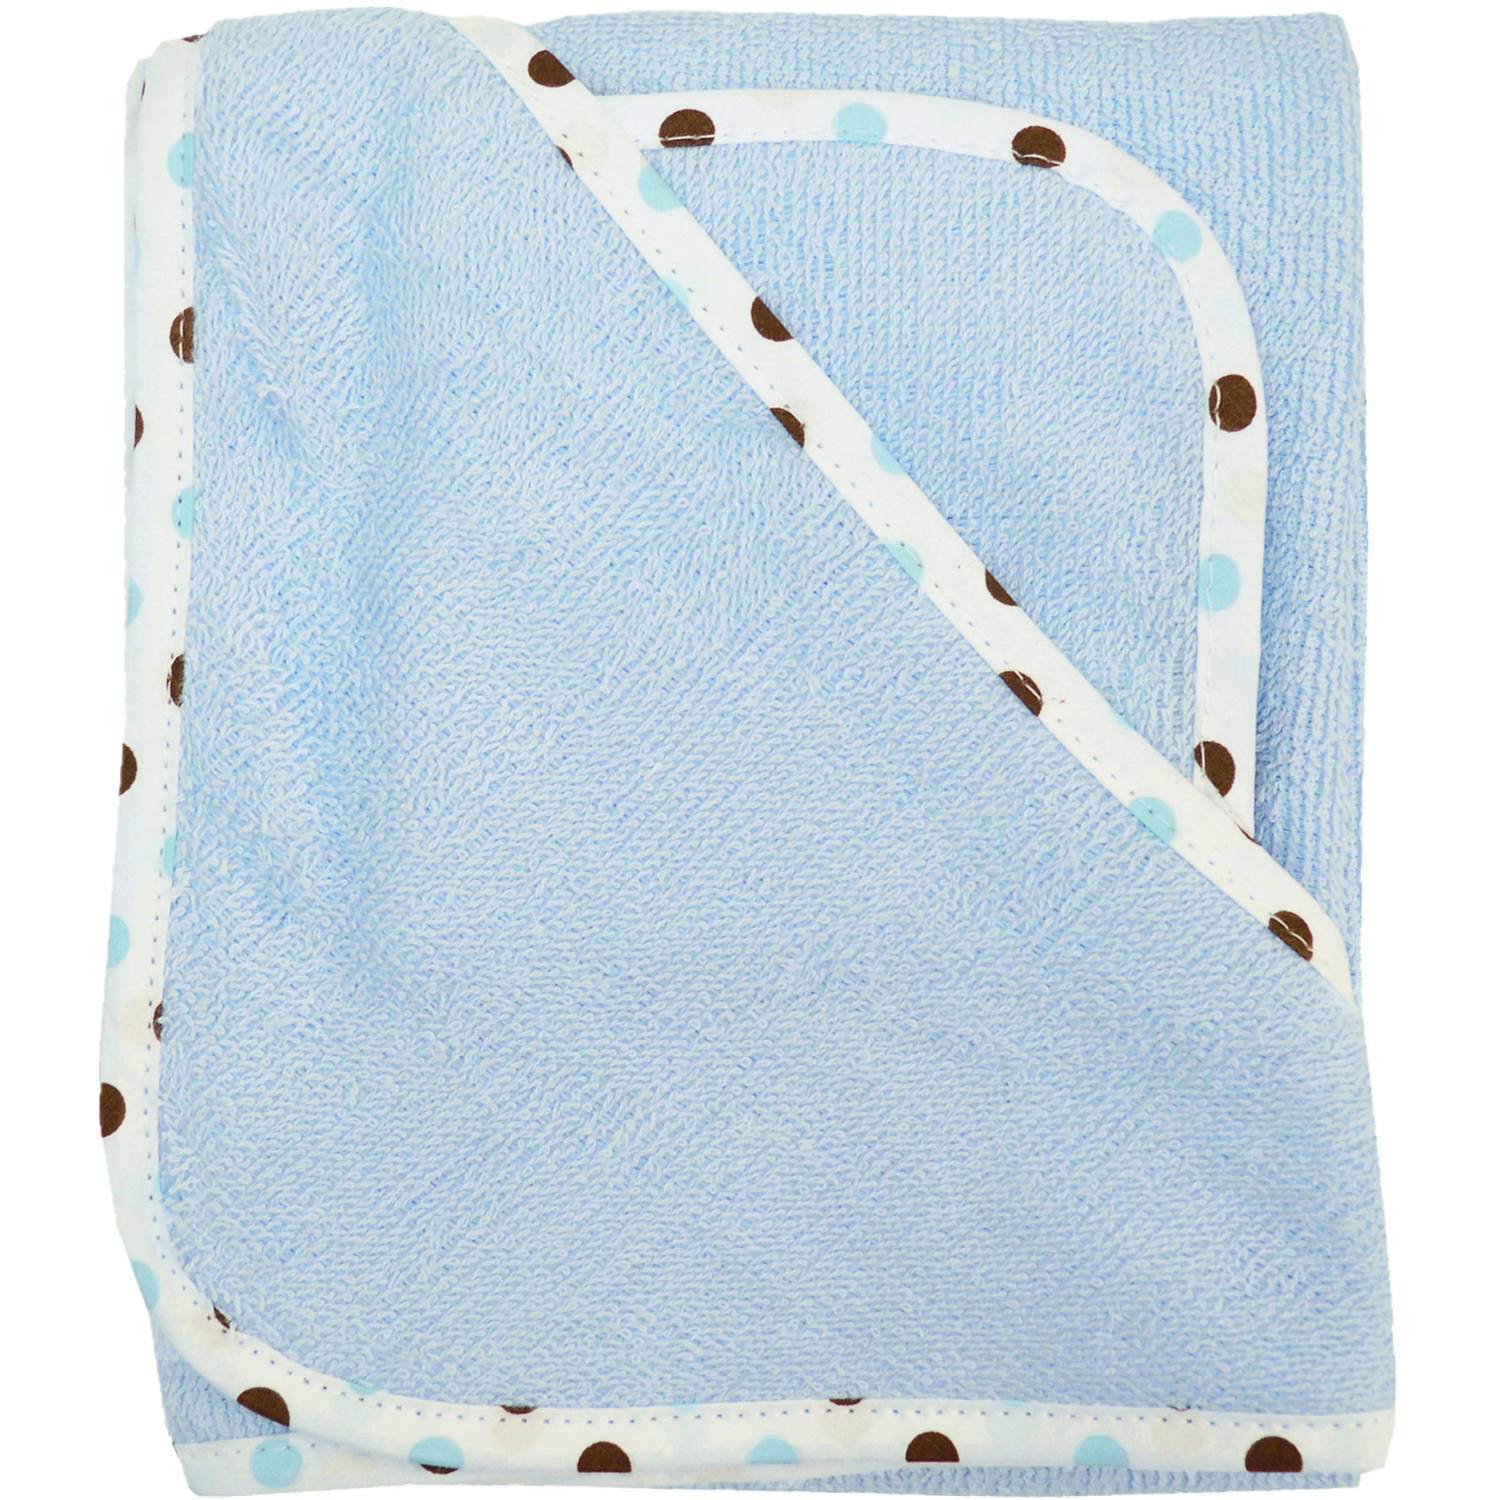 TL Care Terry Hooded Towel Set Made with Organic Cotton, Blue